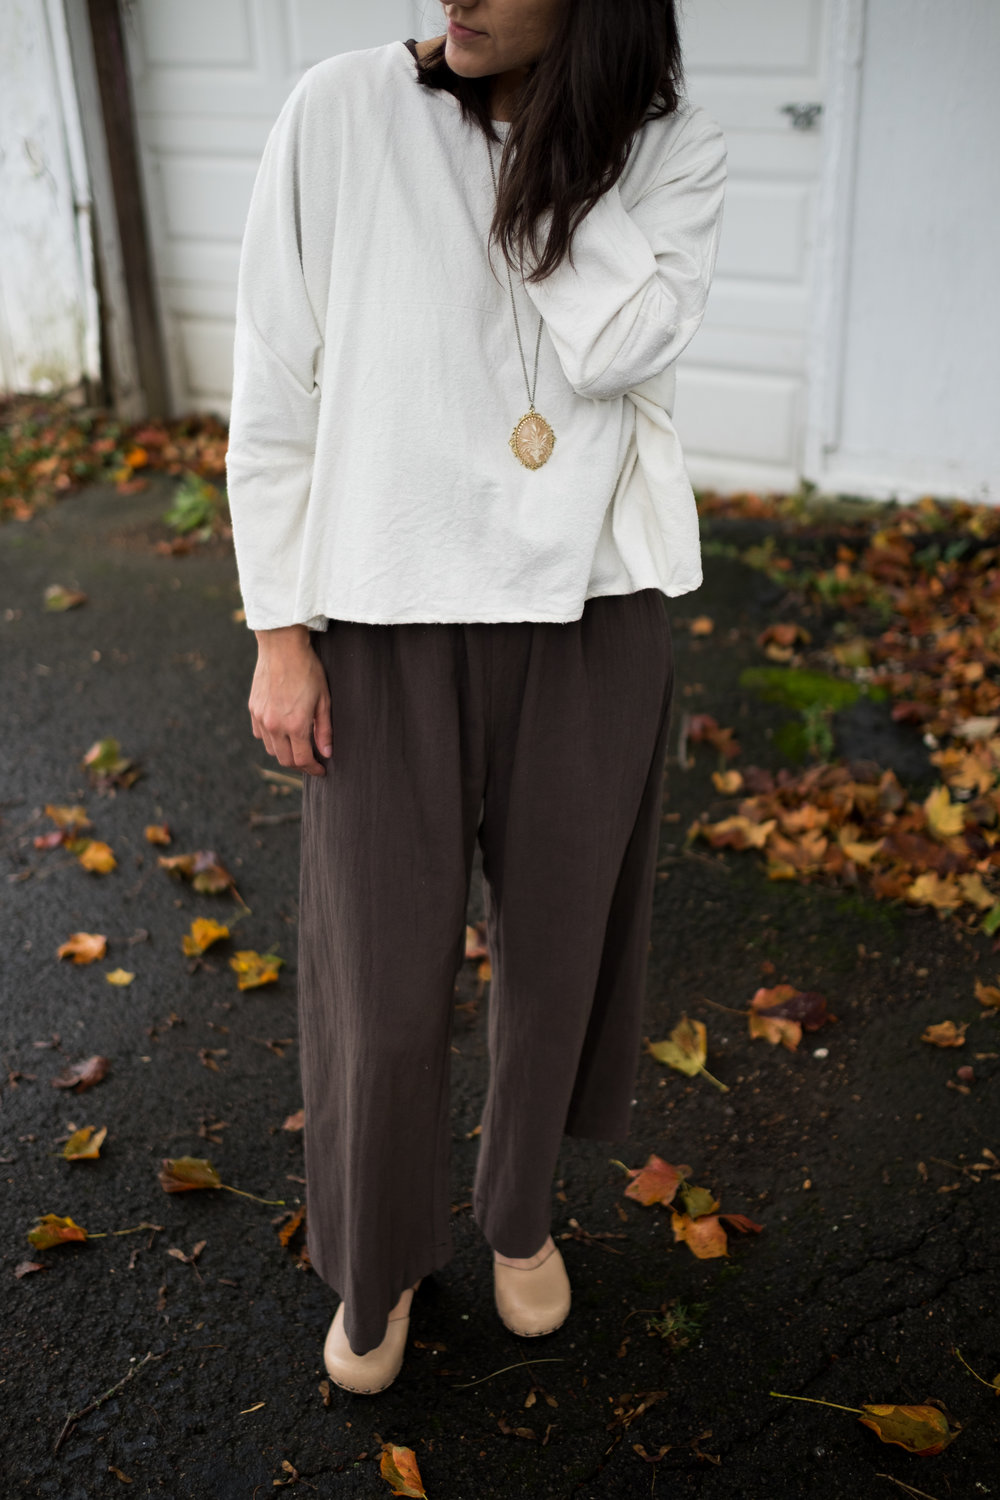 Day 7 - My favorite outfit of the whole challenge! top: Jamie + the Jones T Top bottoms: Esby Duffy crop jumper shoes: old Dansko clogs